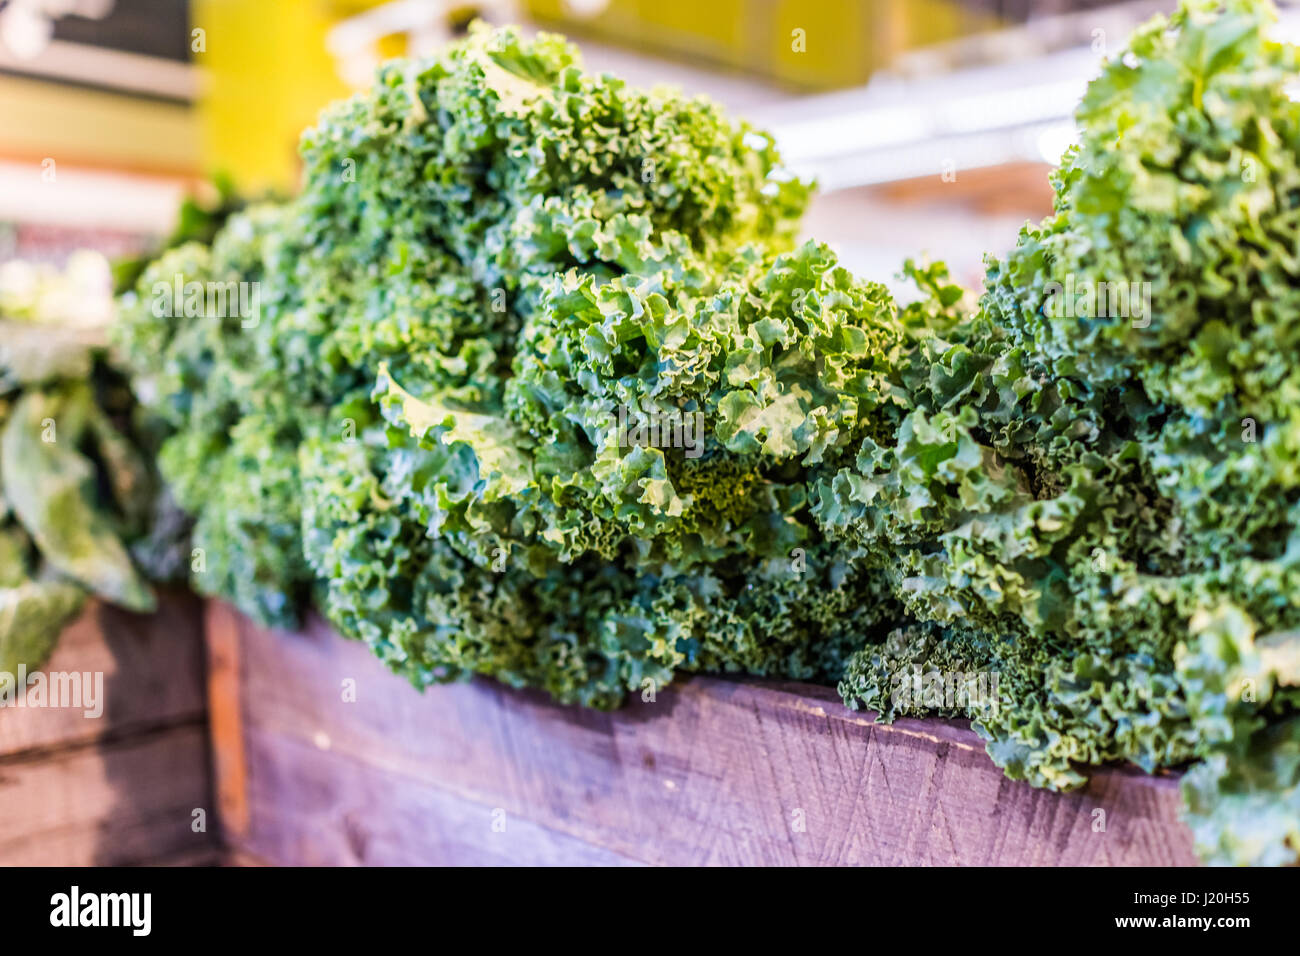 Closeup of kale greens in market store - Stock Image